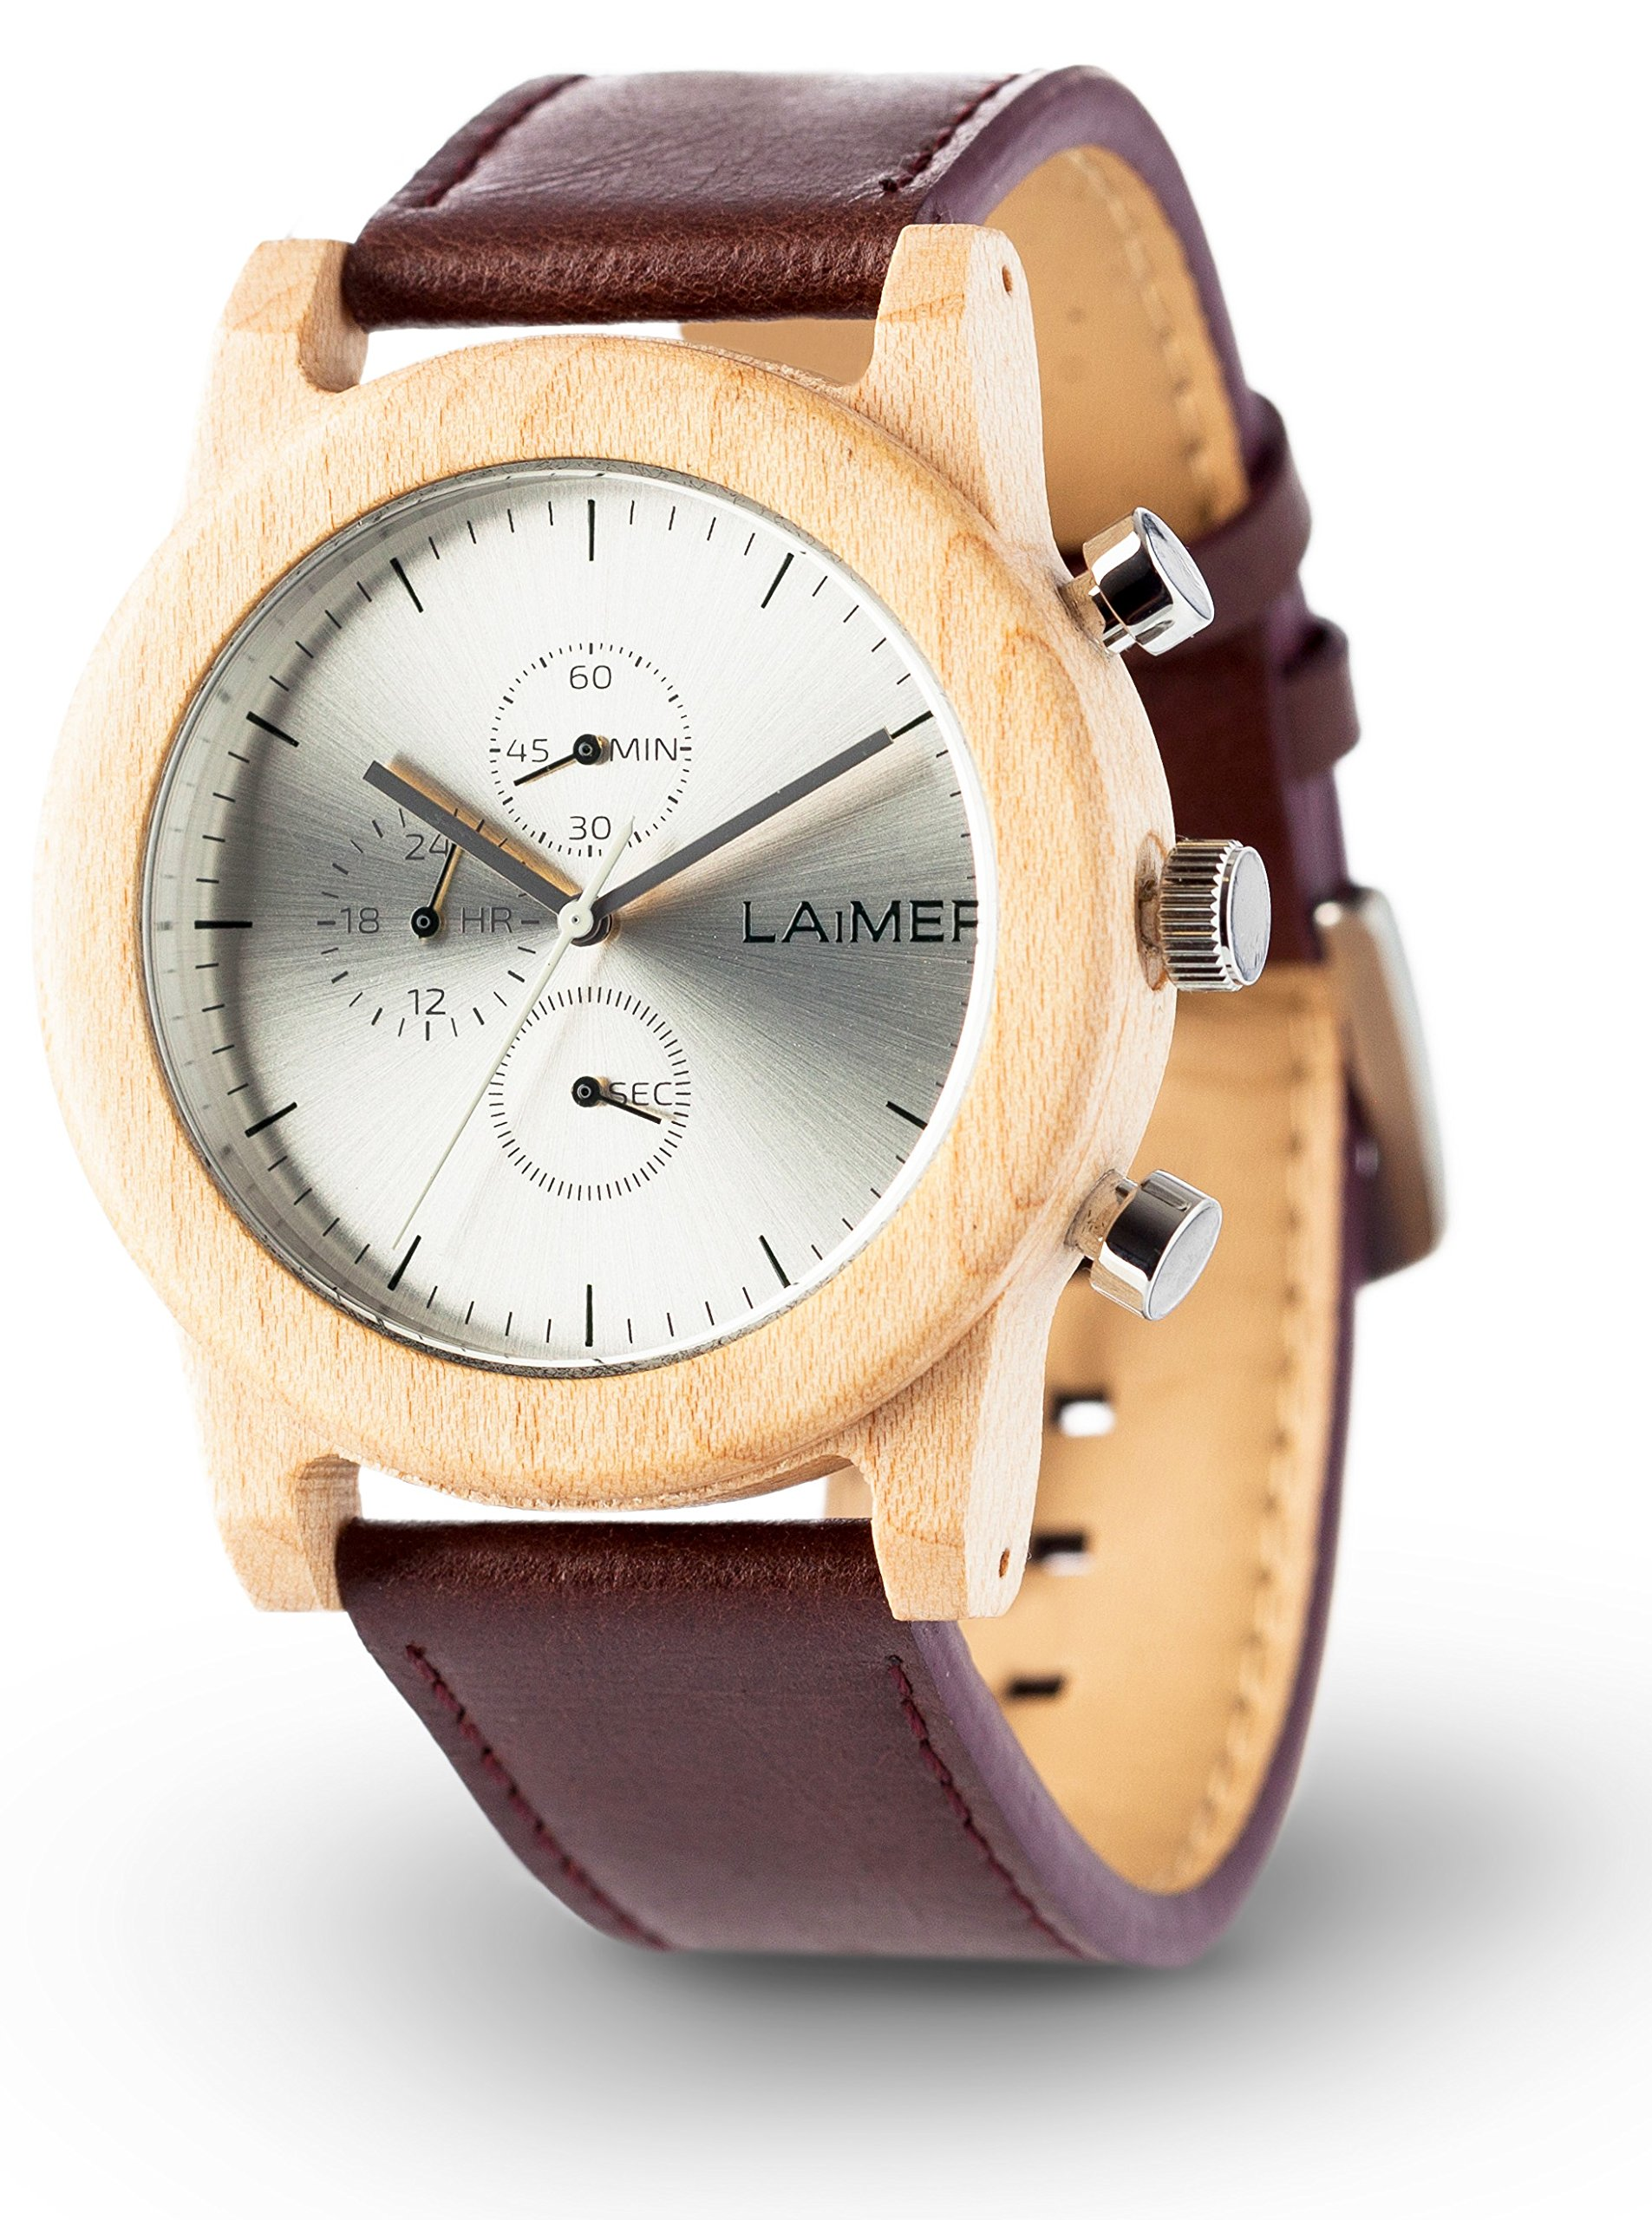 LAiMER Men's Chronograph Wooden Watch PETER – Wrist Watch made of natural Maple Wood - Leather Strap, bright Design